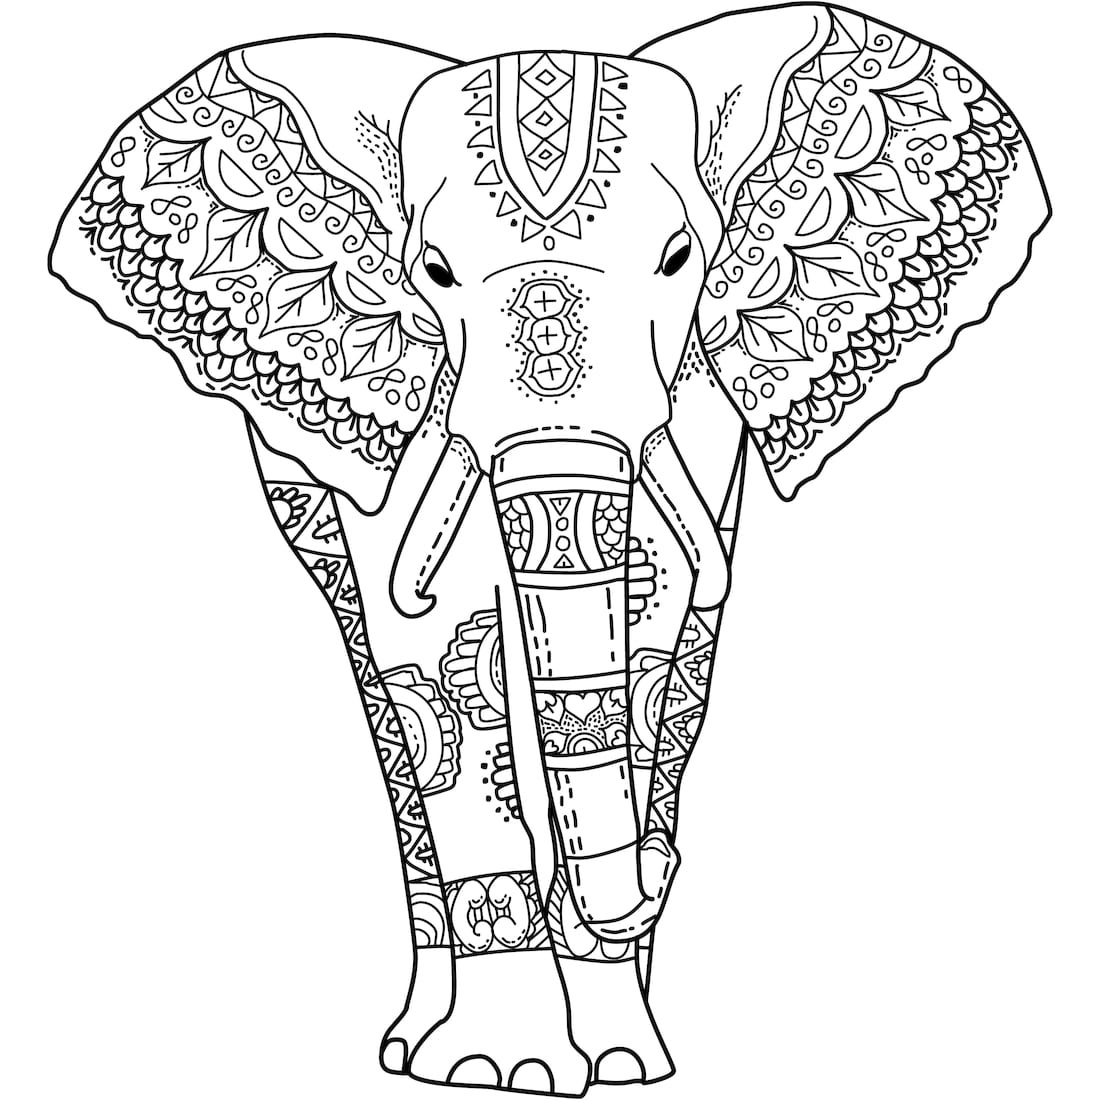 colouring pages of elephant elephant drawing pages at getdrawings free download colouring elephant pages of